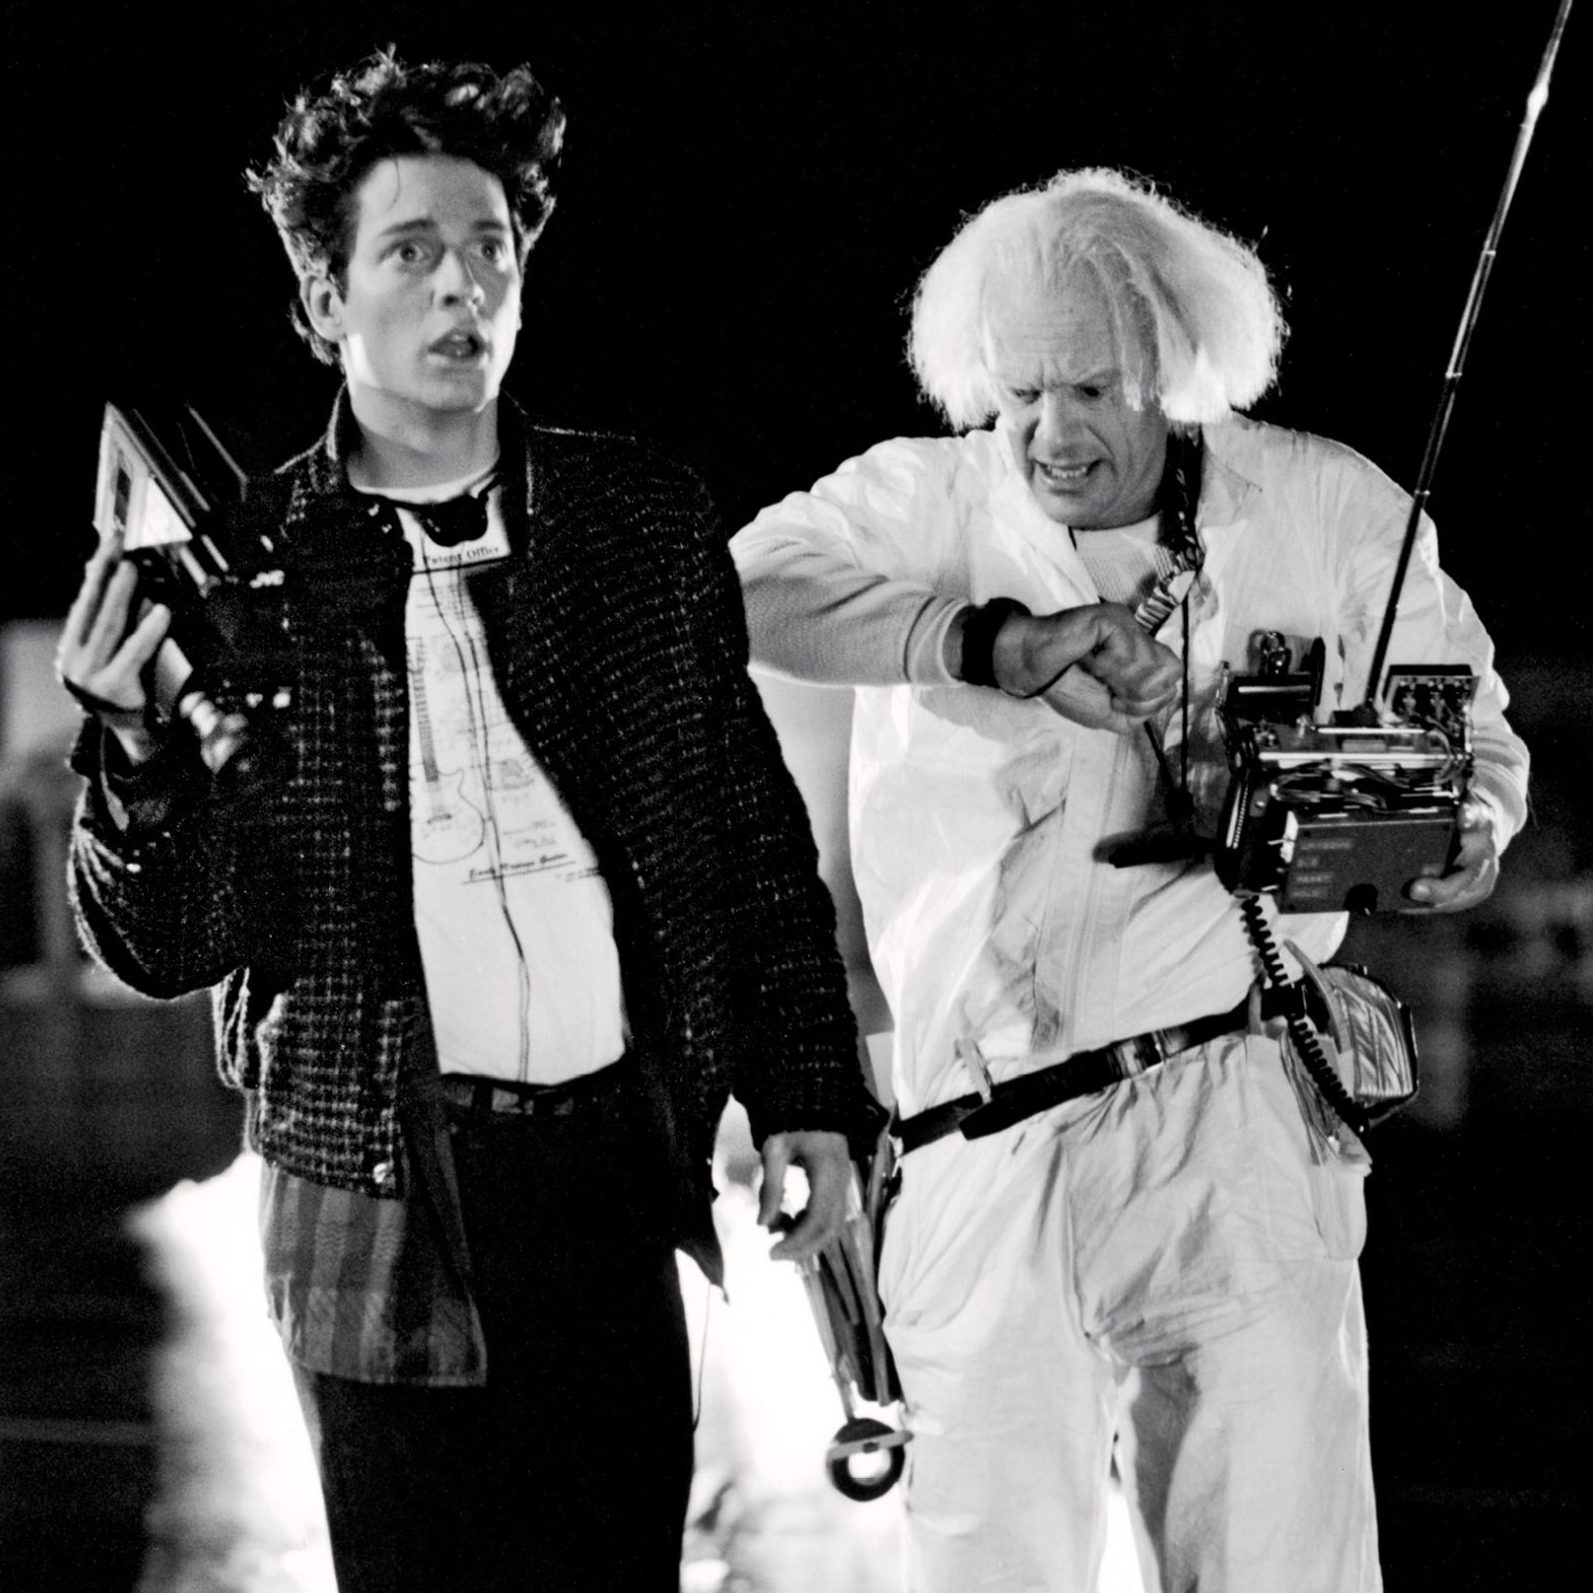 87ebe0e5af534385c02aa1faab262ab2 e1600084069349 20 Things You Missed In Back To The Future